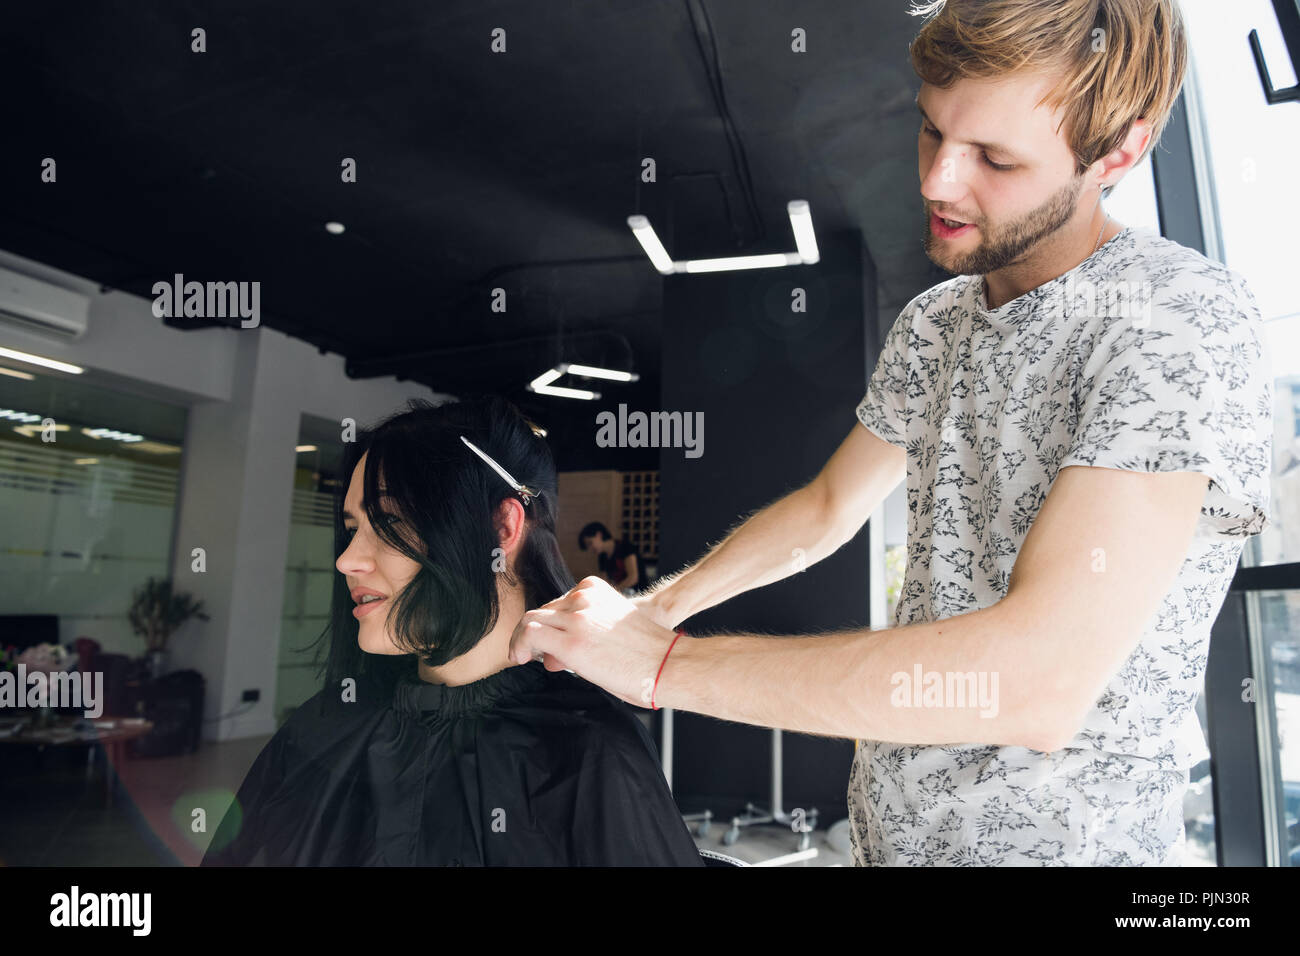 Hairstylist with comb and scissors cutting hair of female client. Woman in hairdressing beauty salon. - Stock Image